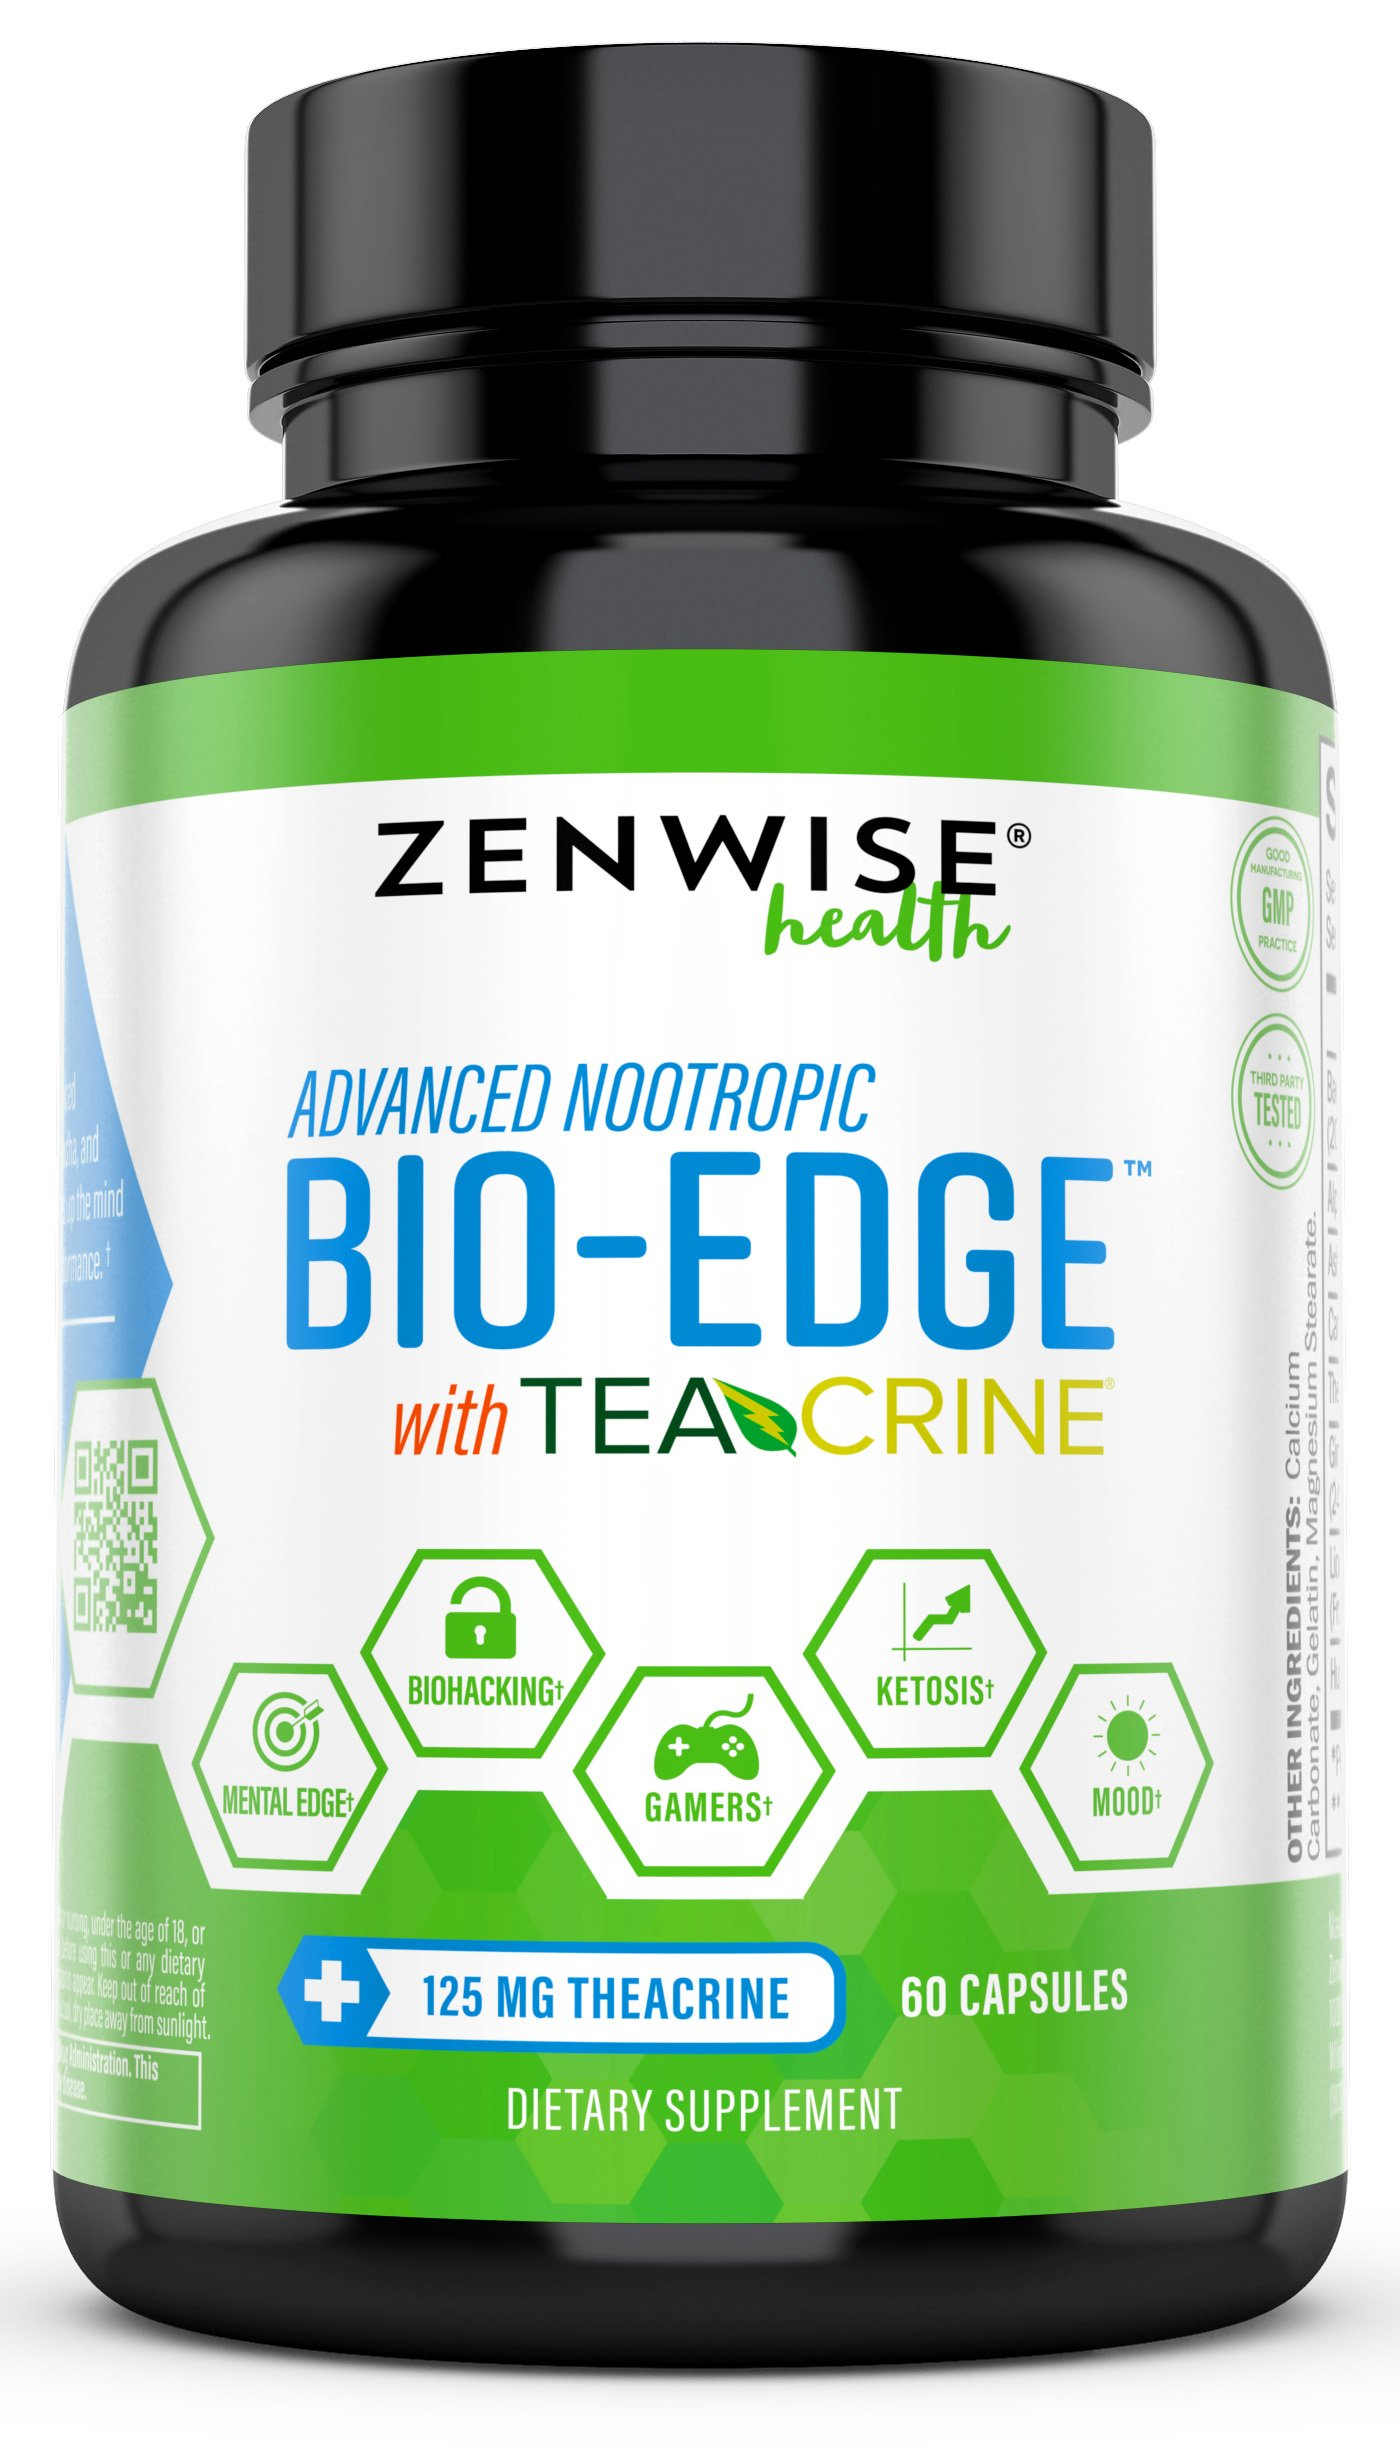 Nootropic with 125mg TeaCrine Theacrine - Ashwagandha & Alpha GPC + Bacopa Monnieri Extract for Energy & Focus - Bio Edge Mental Fuel & Keto Diet Friendly Supplement - 60 Capsules